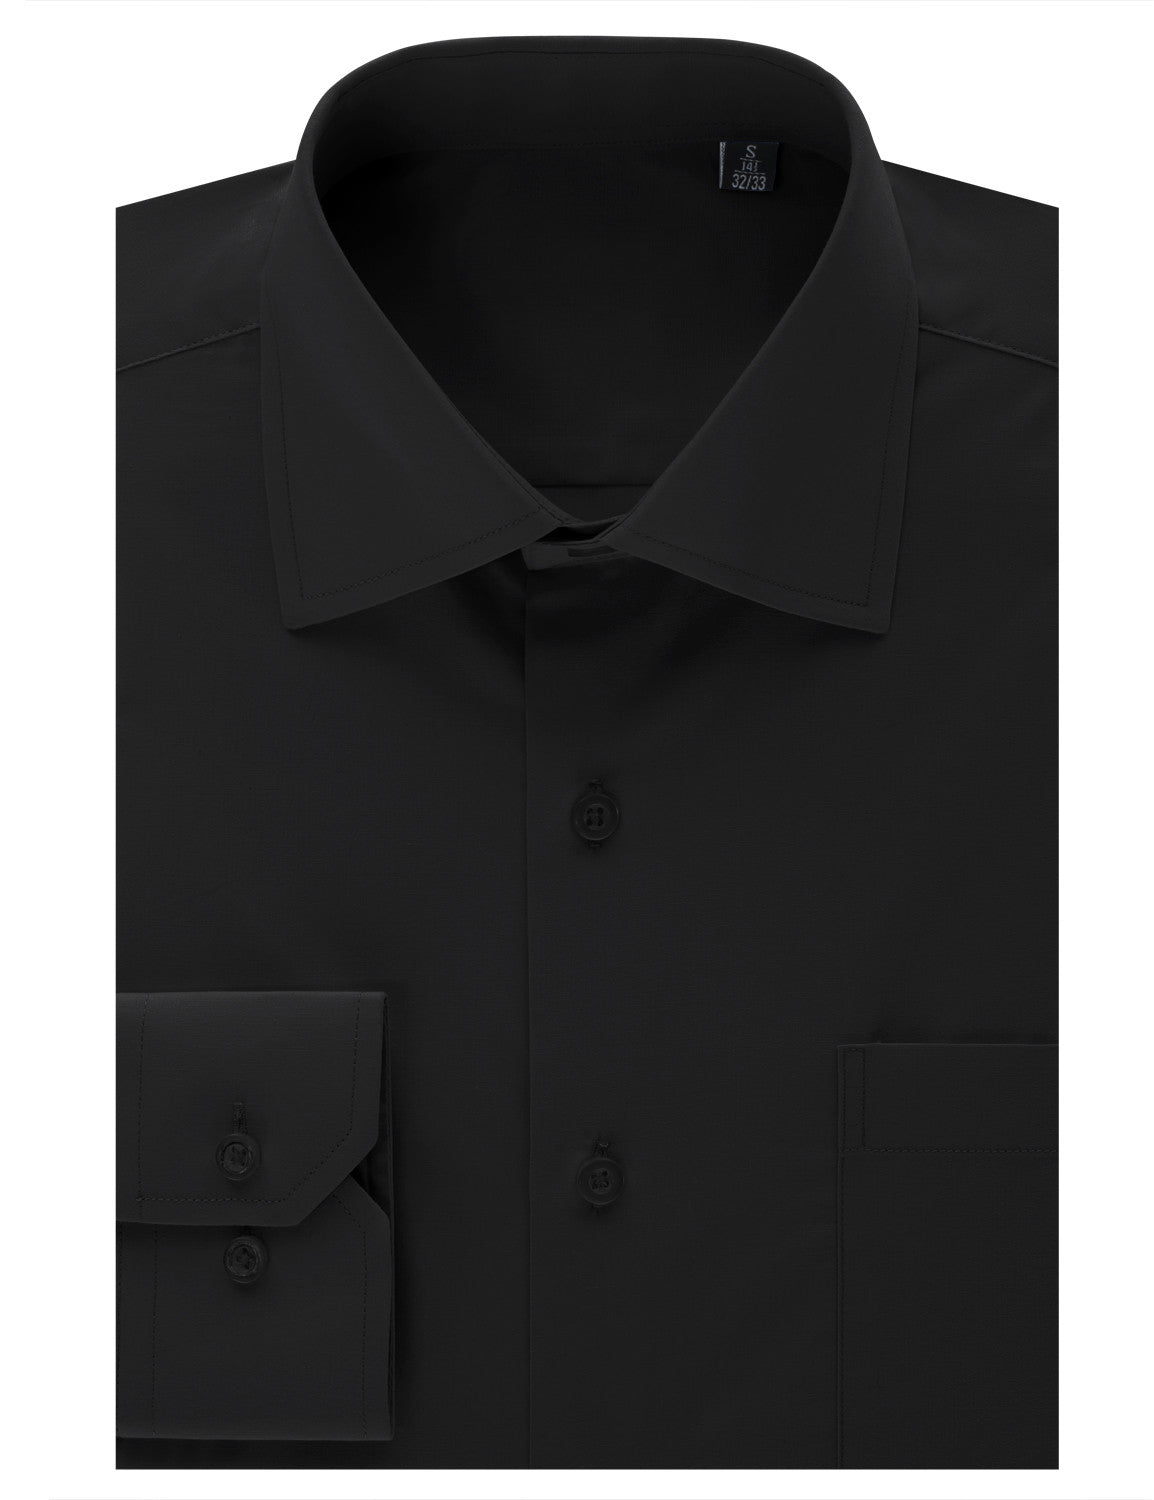 TC22BLACK Black Regular Fit Dress Shirt w/ Reversible Cuff (Big & Tall Available)- MONDAYSUIT